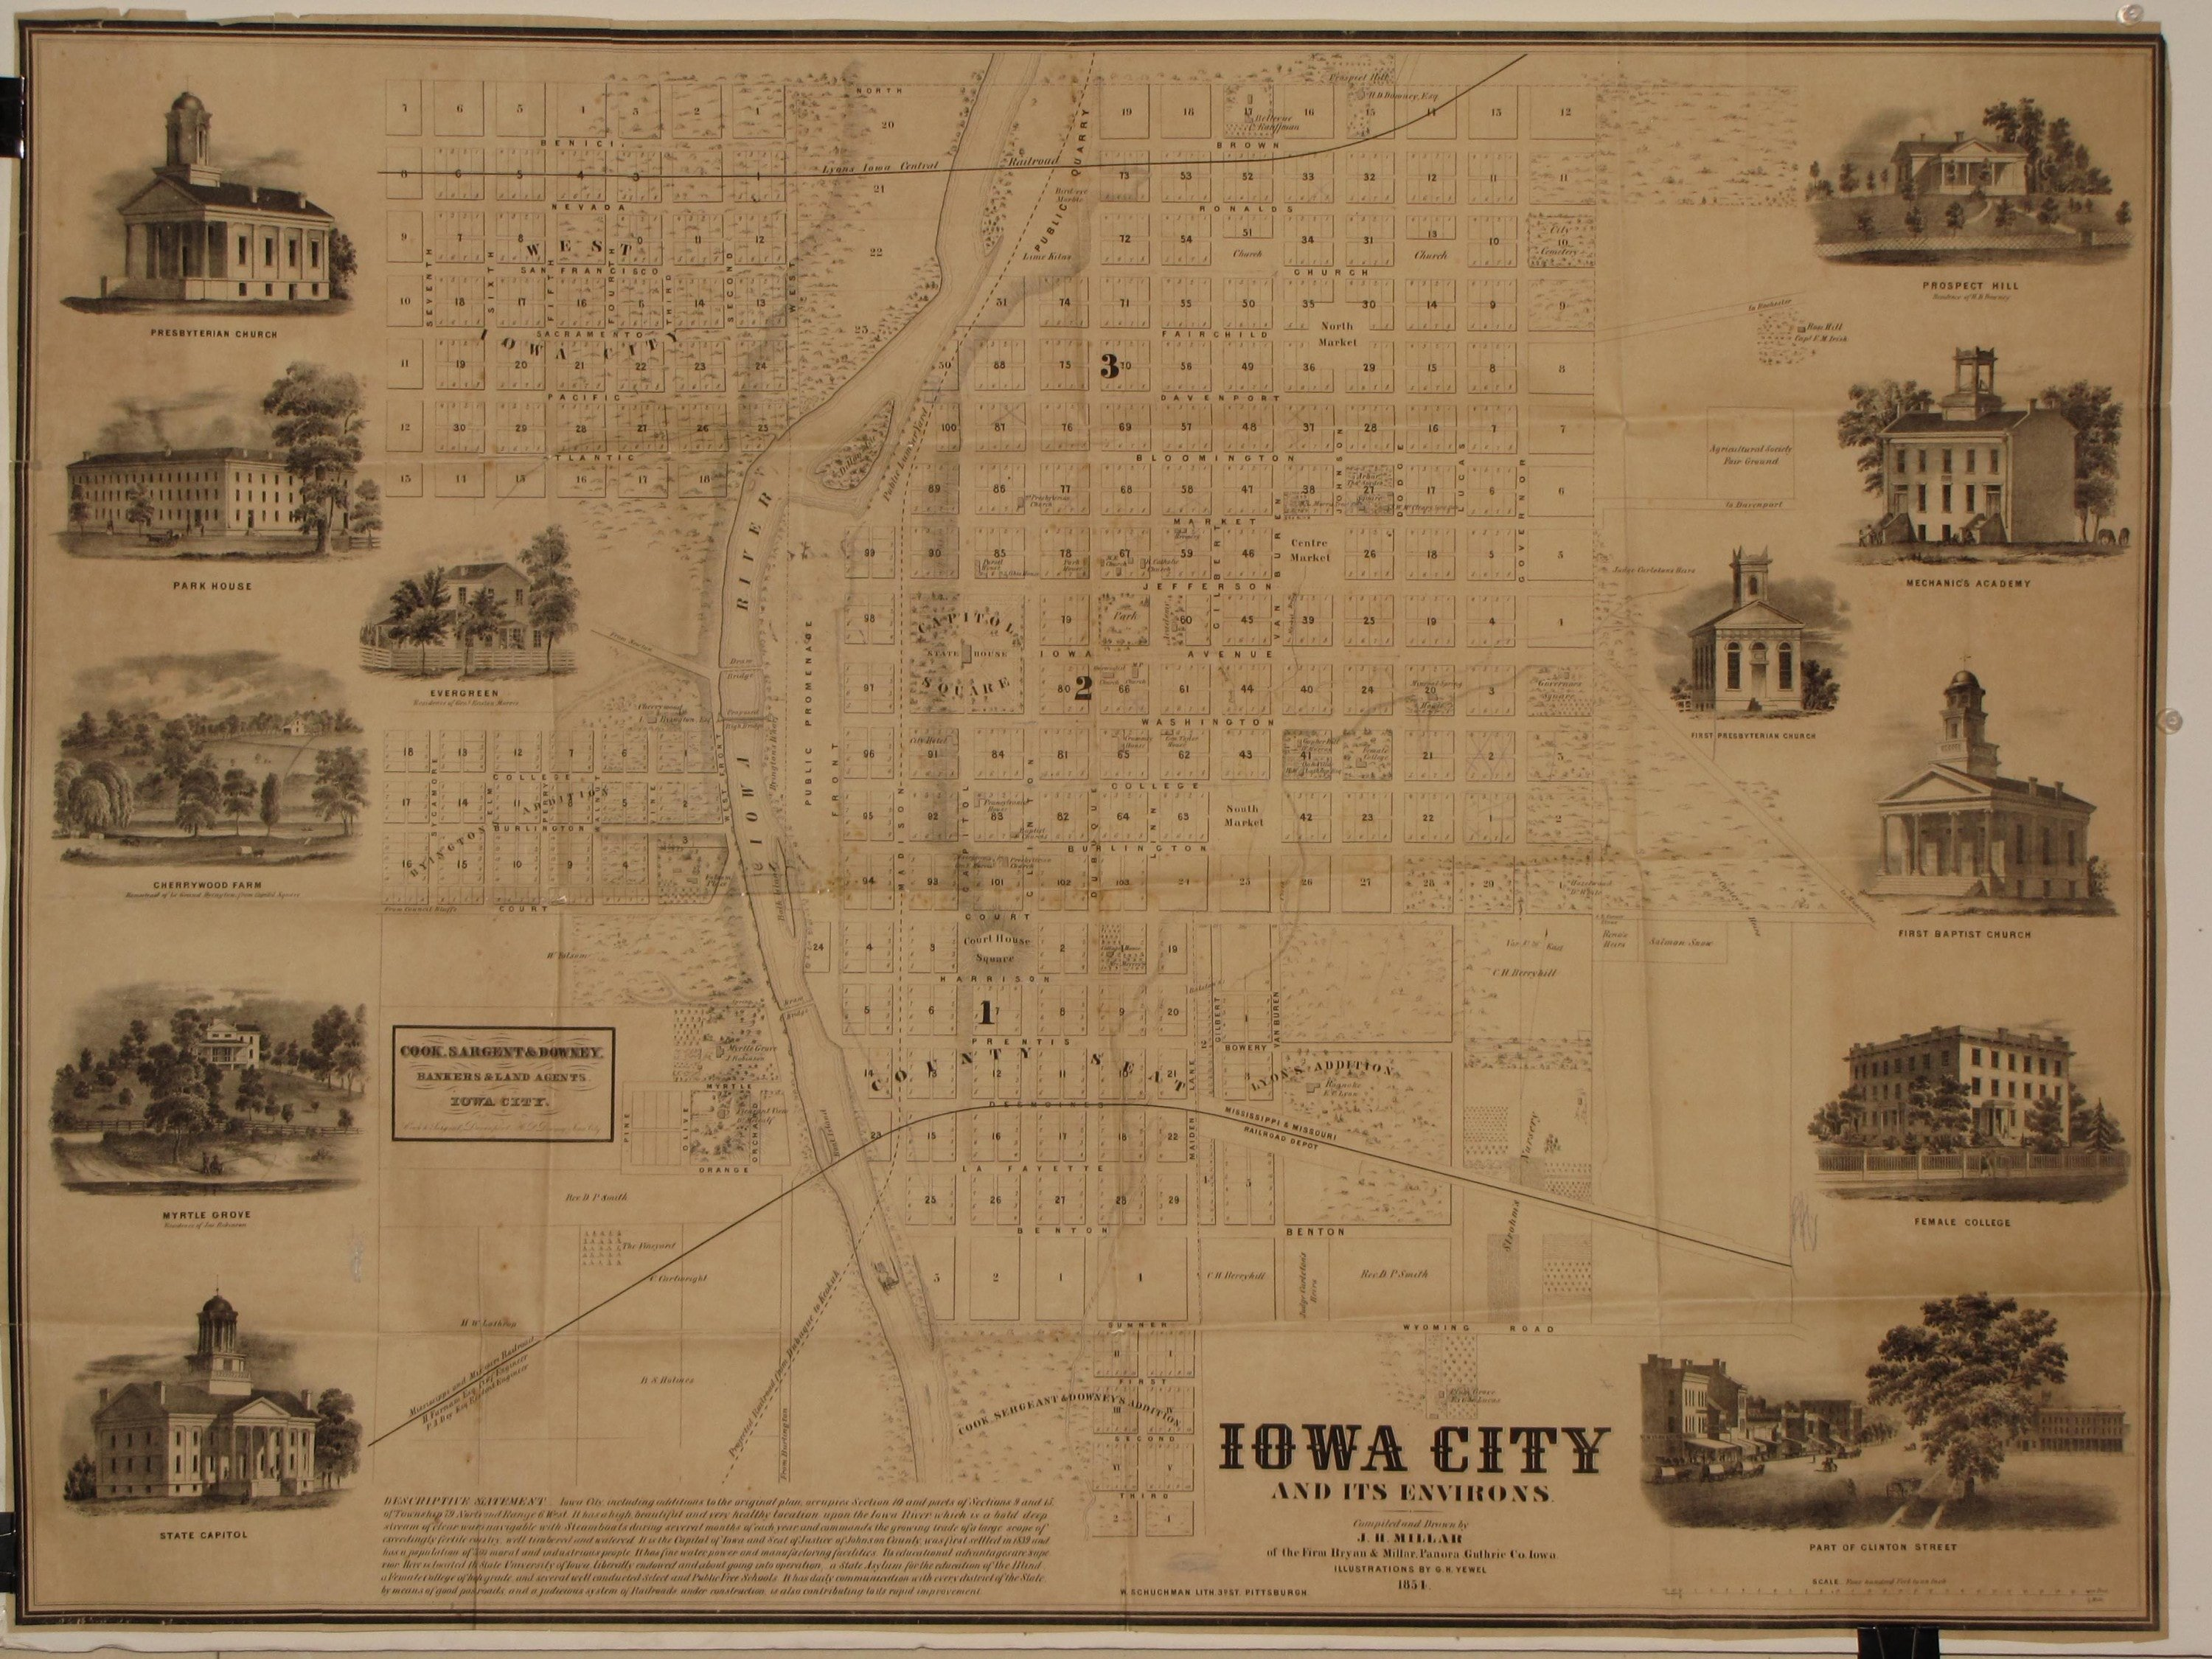 A terrific map of Iowas first state capital Rare Antique Maps